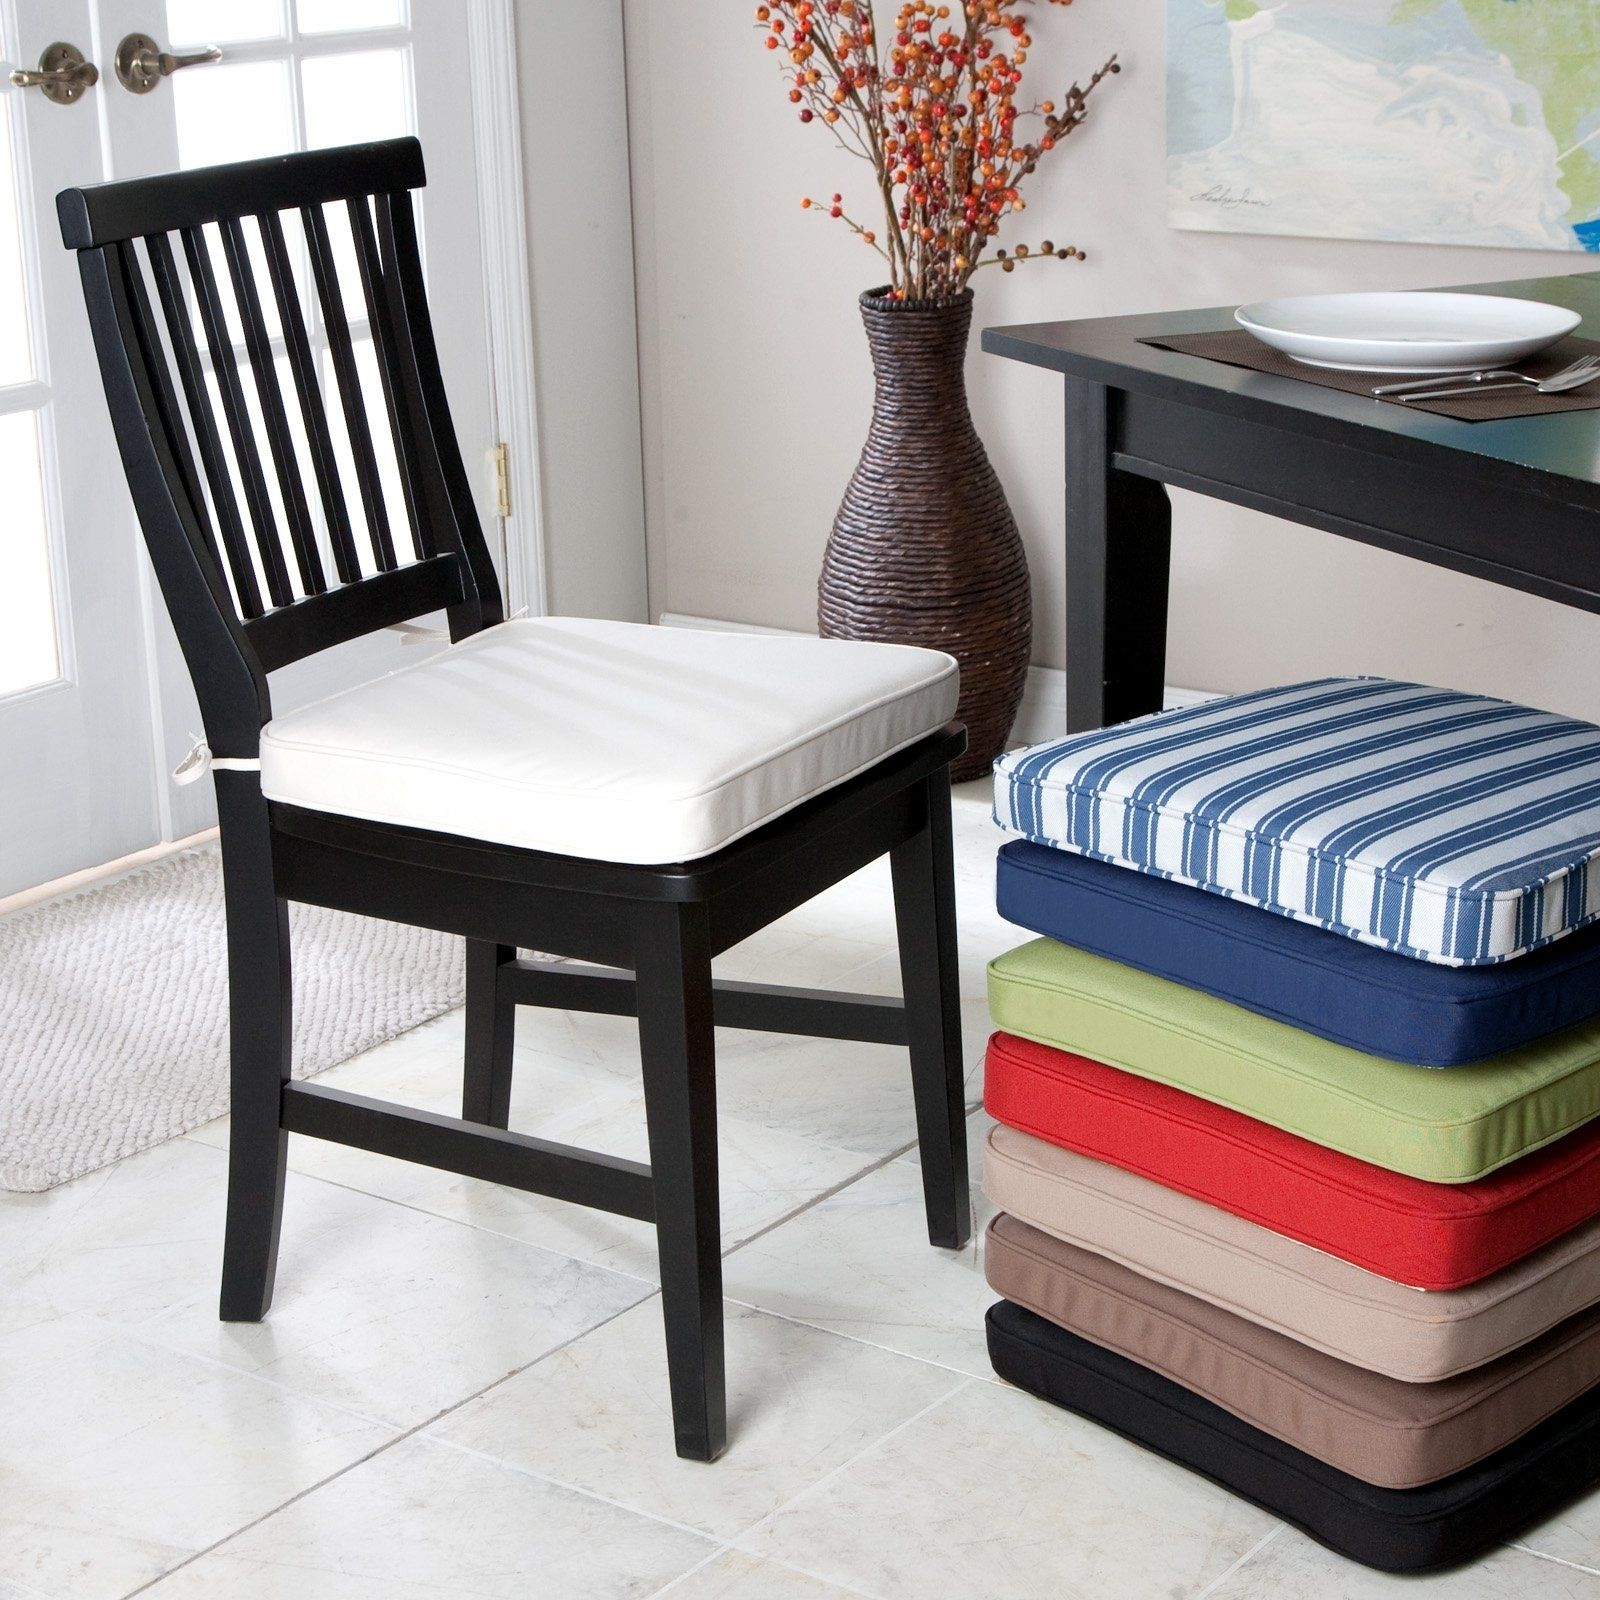 How To Find The Right Dining Room Chair Cushions Dining Room